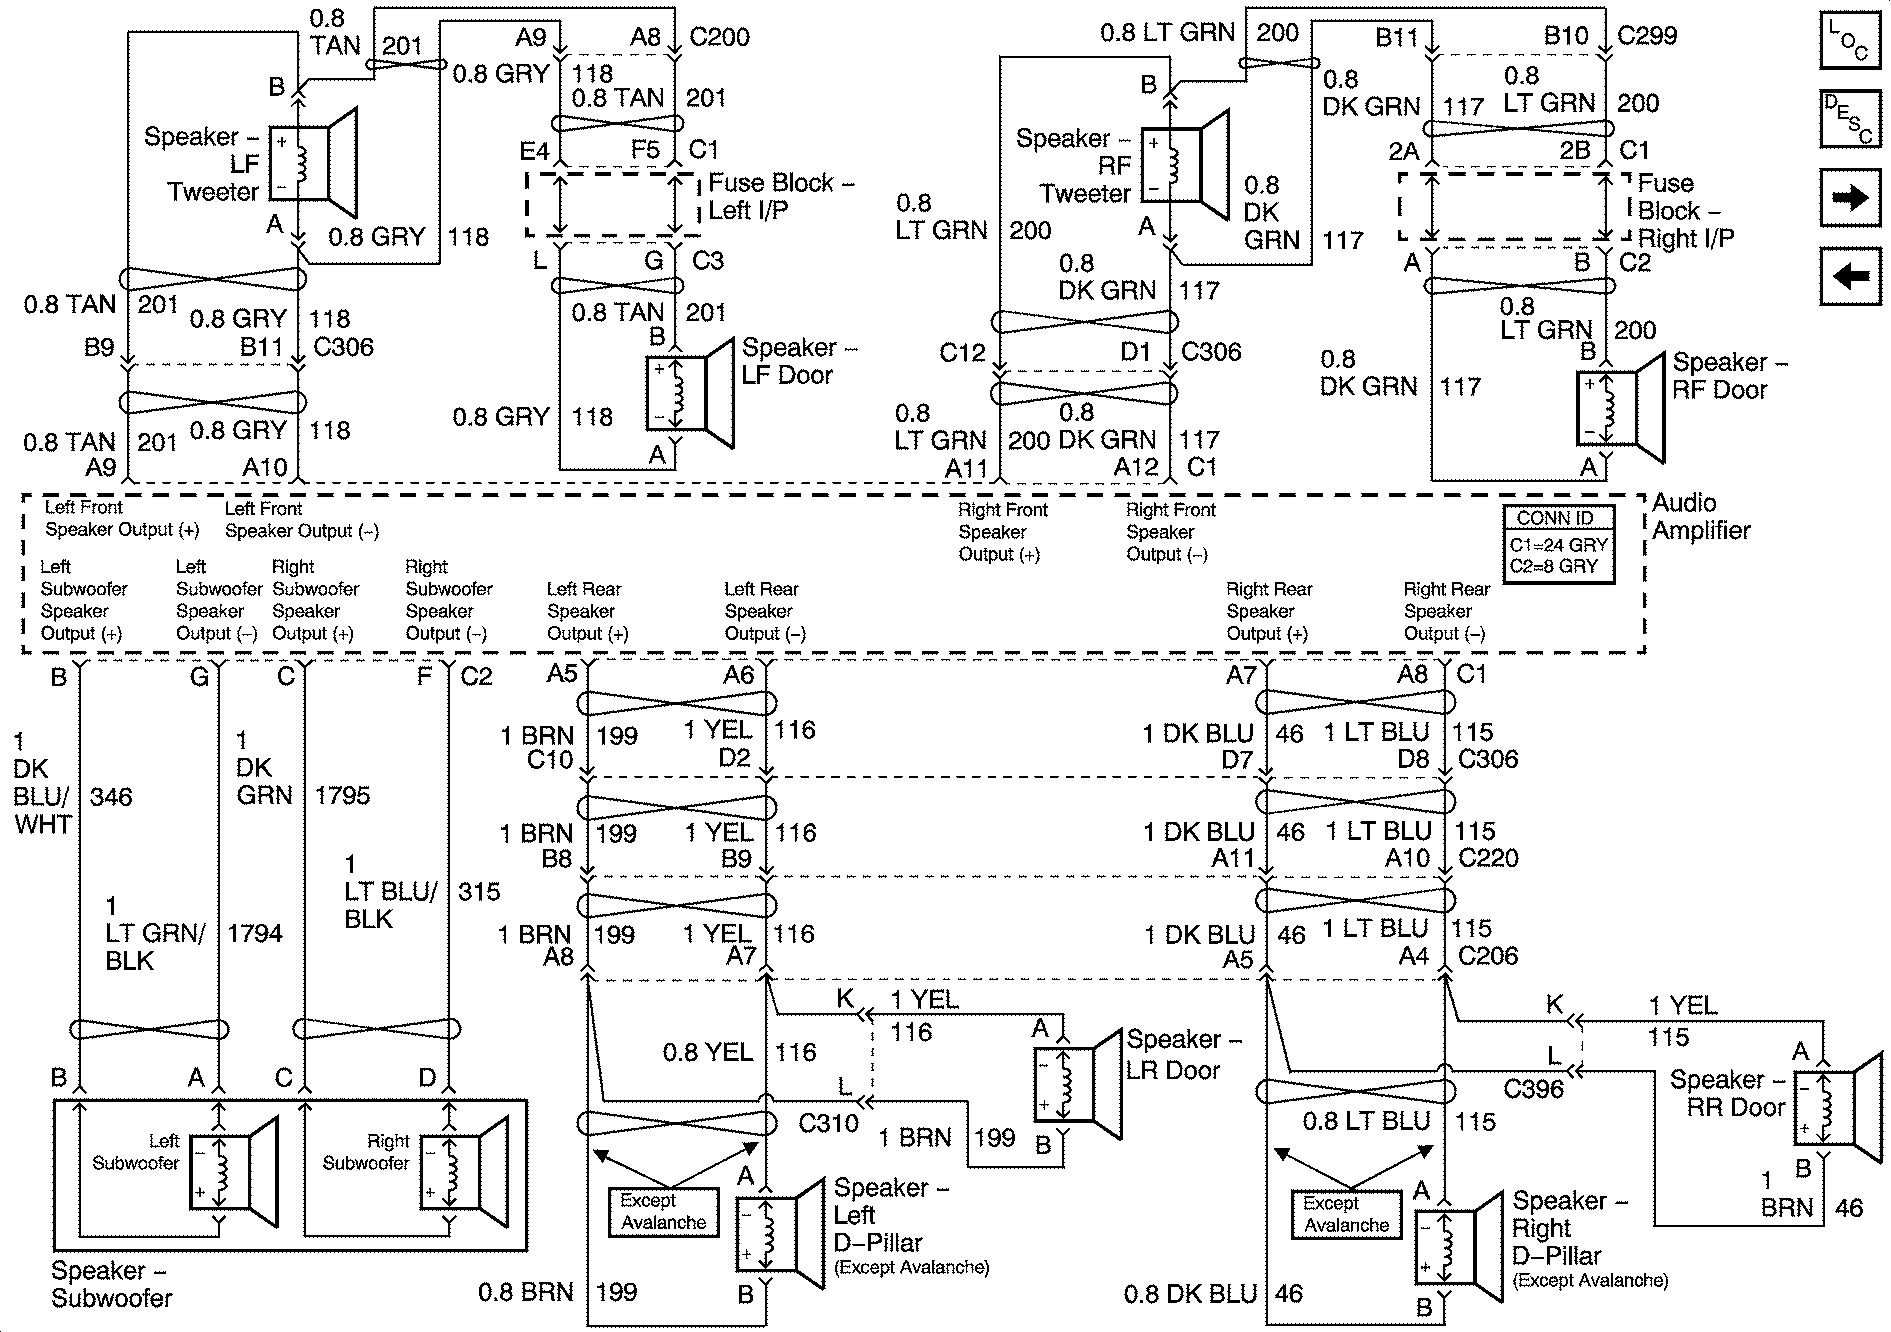 2004 Chevy Avalanche Radio Wiring Diagram | Free Wiring ...